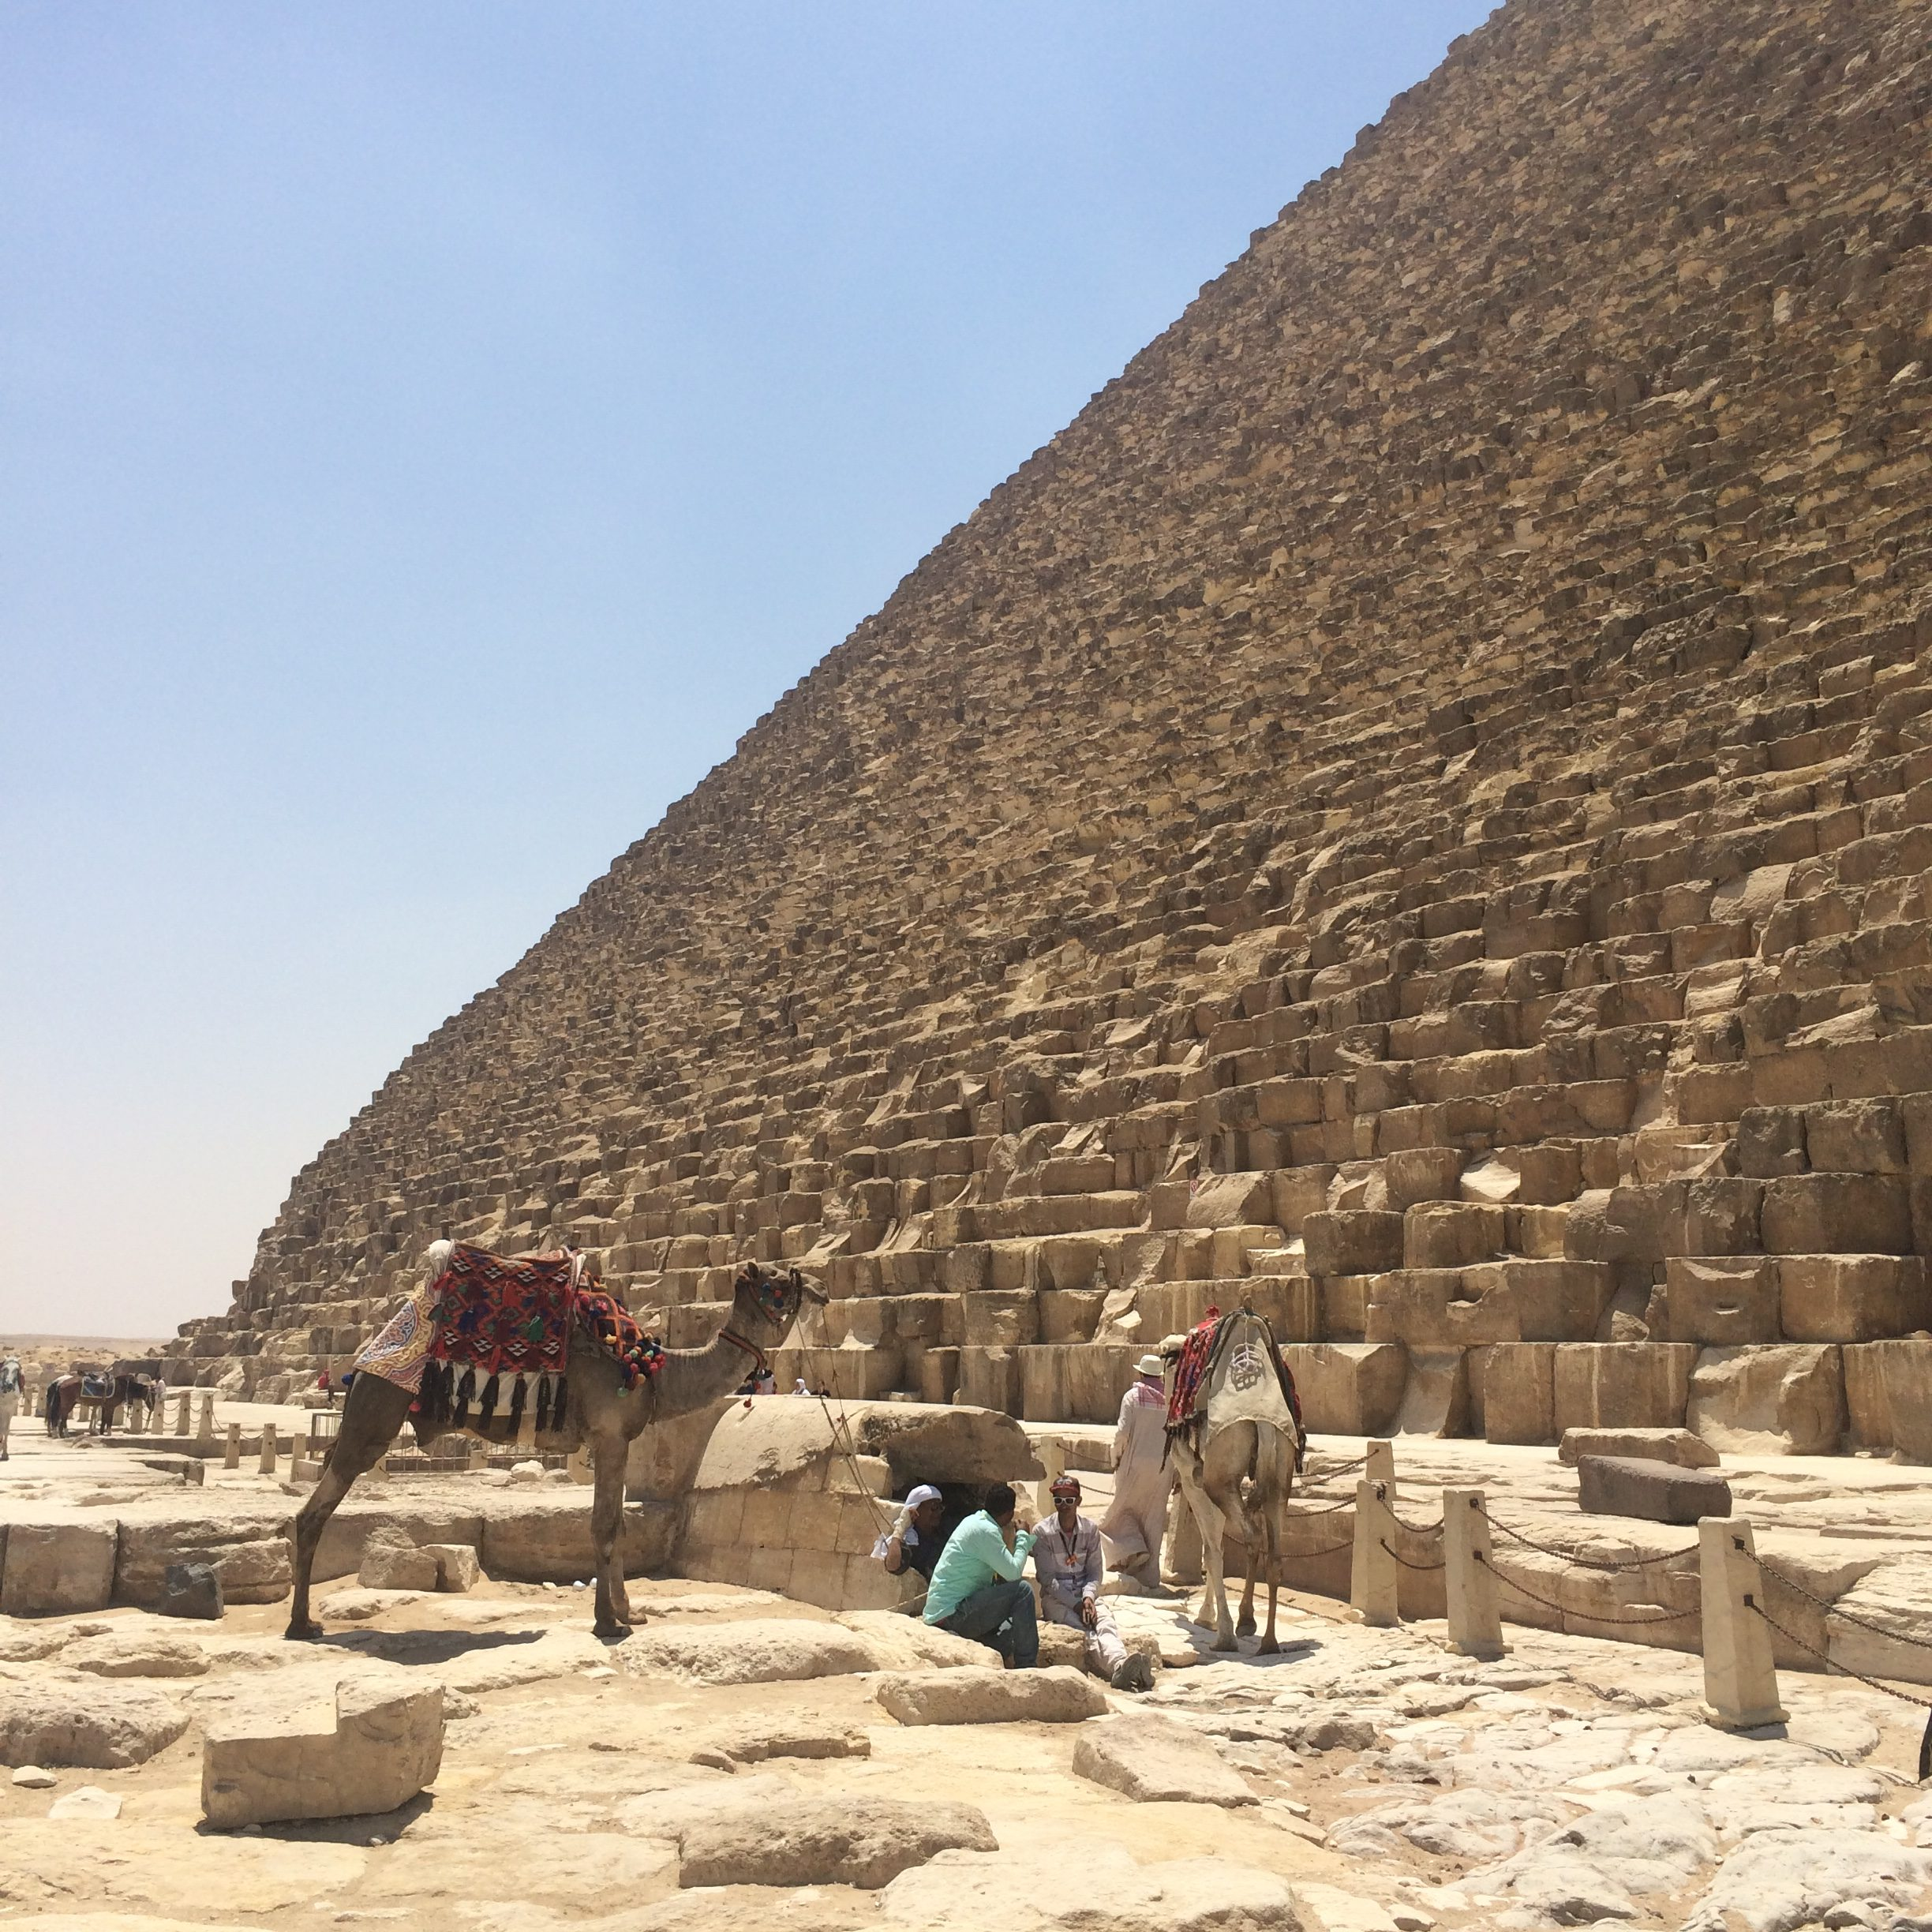 Cairo Pyramids and camels